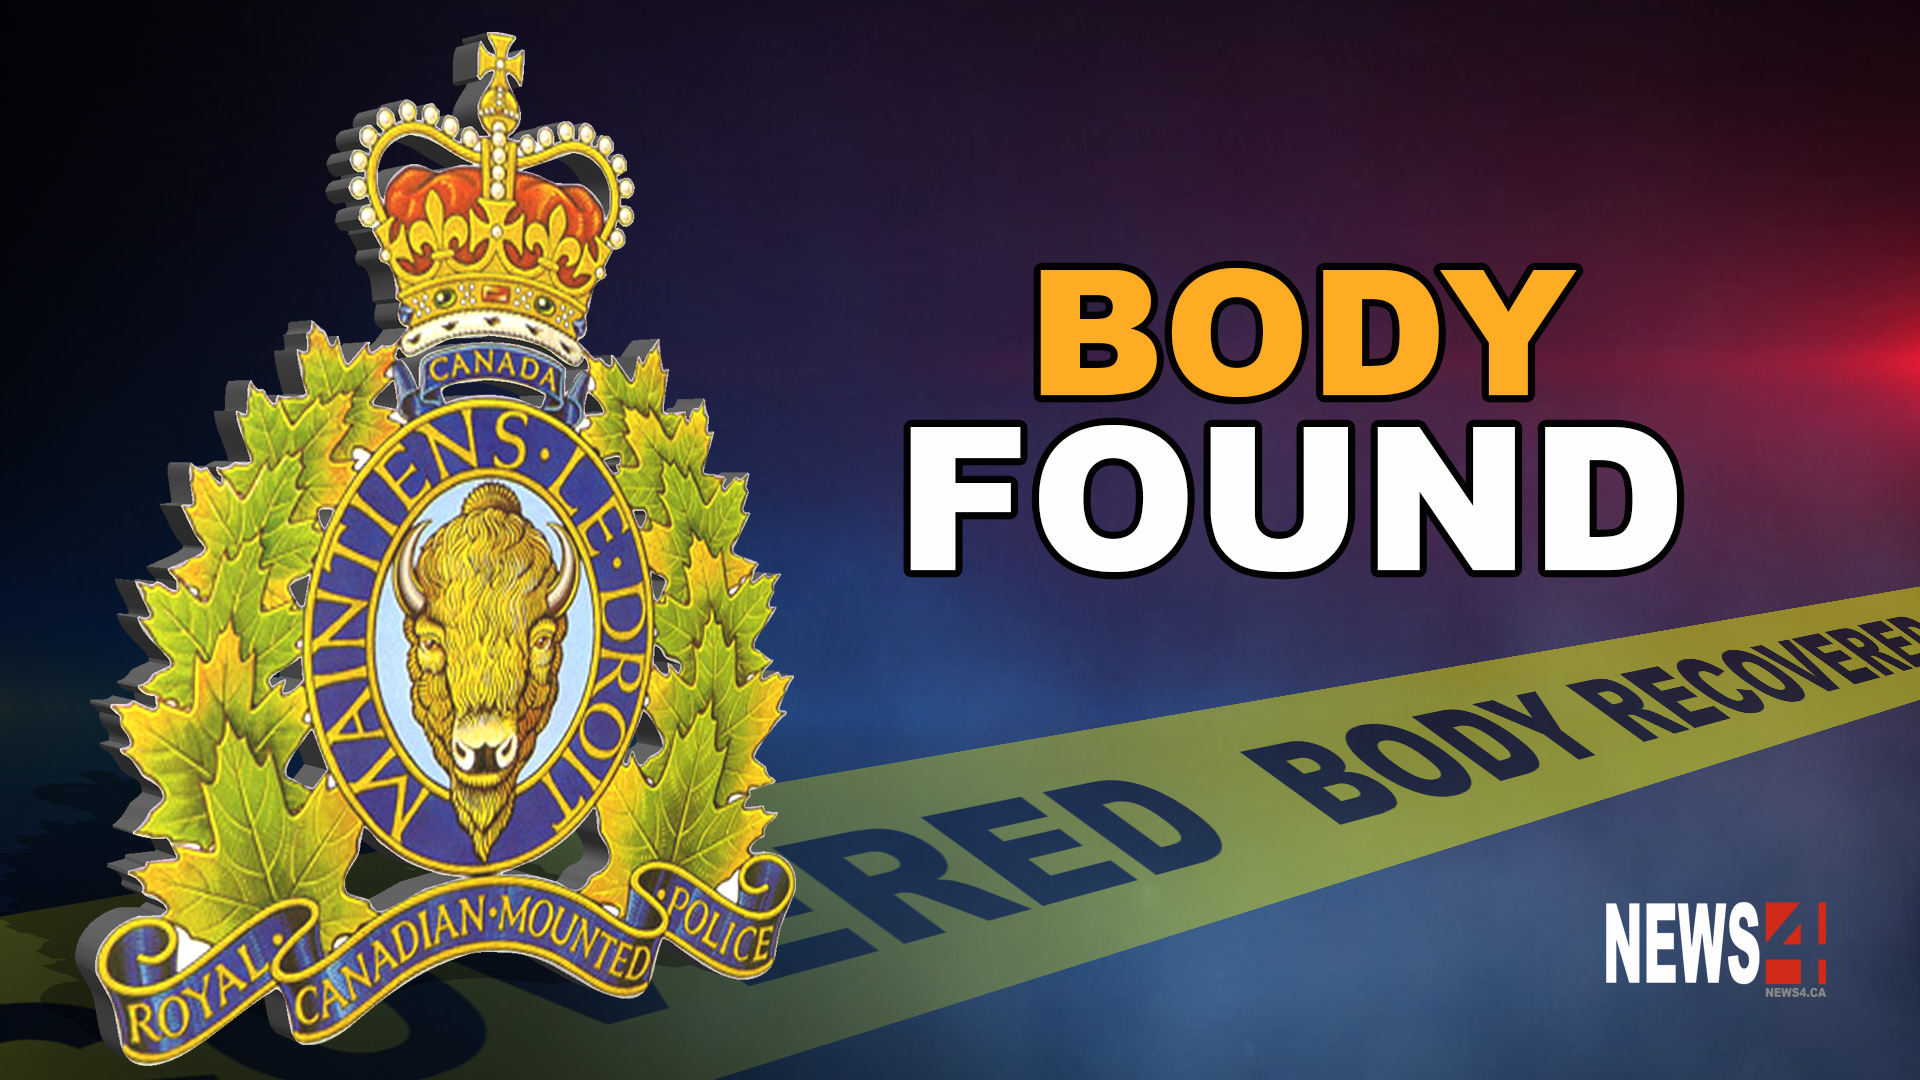 body recovered graphic